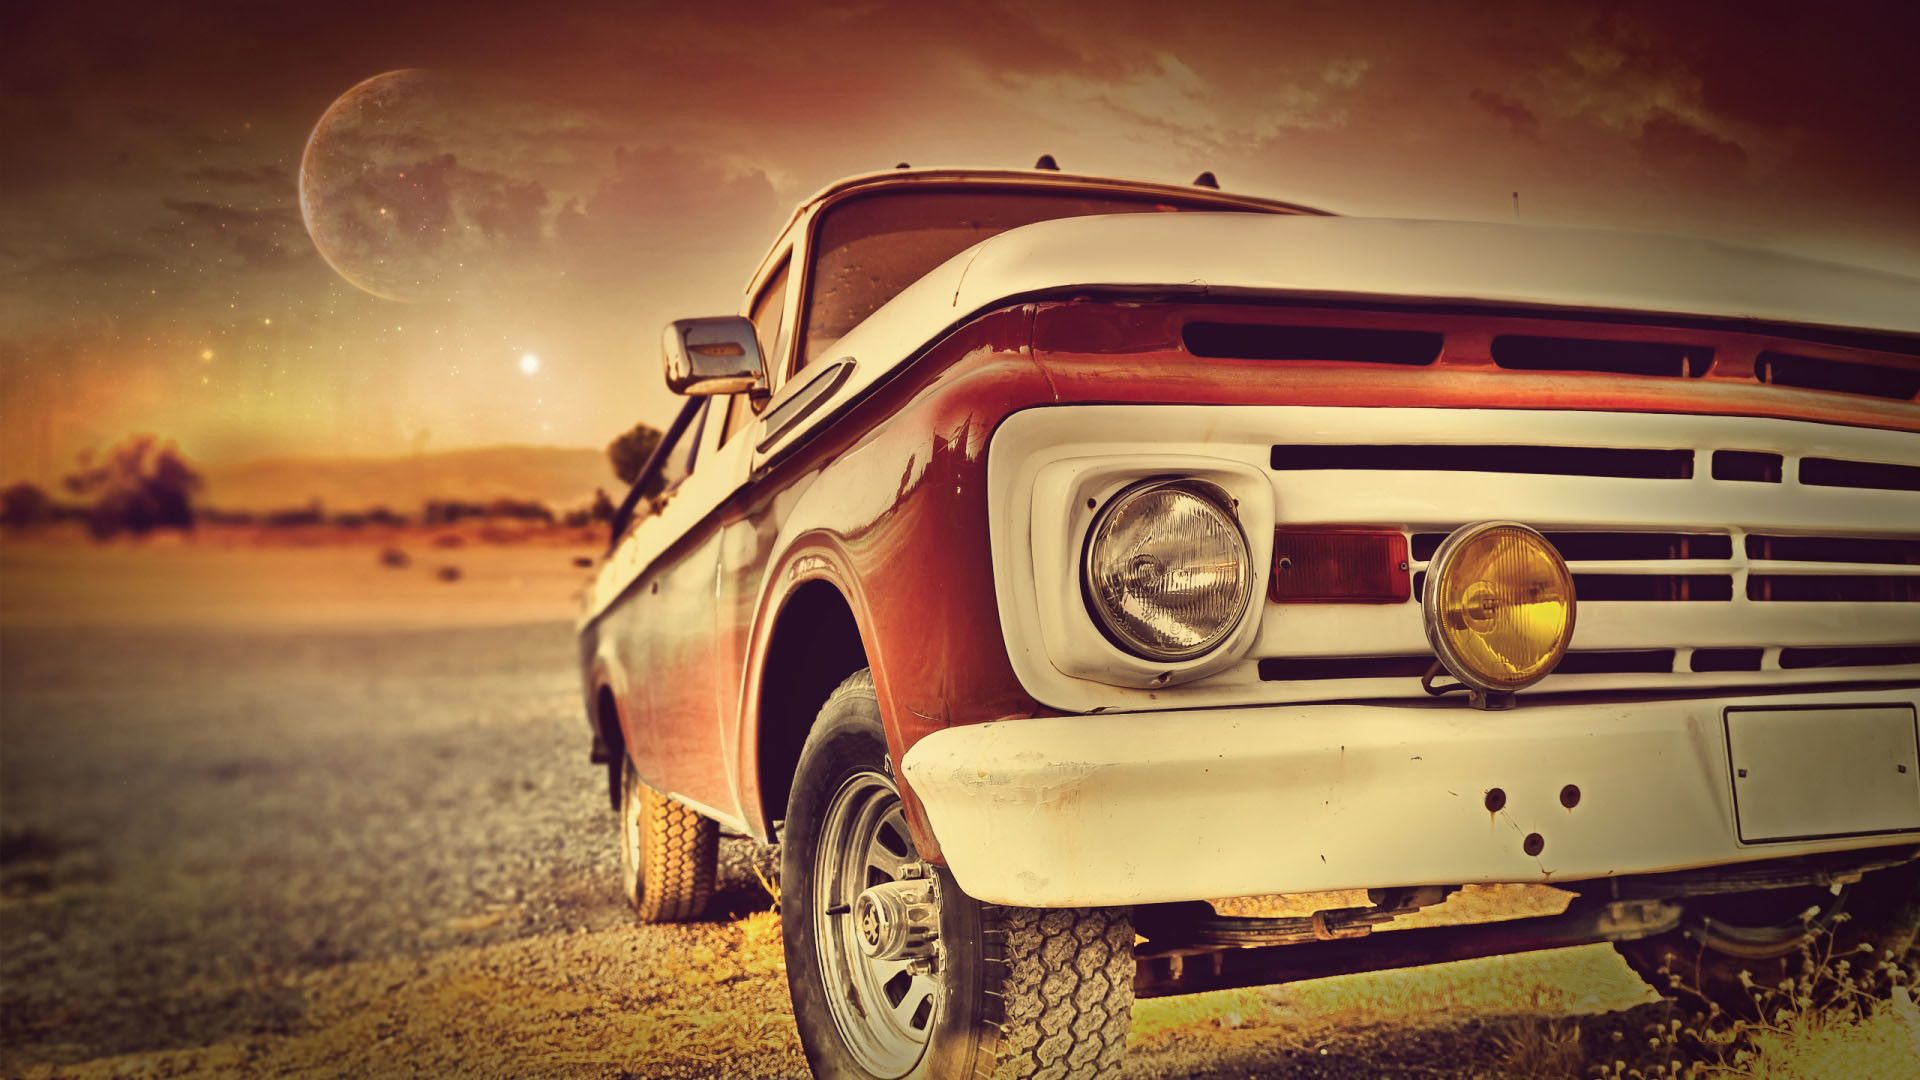 Vintage Red Car In The Sunset Old Car Cars Wallpapers Download Beautiful Hd Wallpaper 1080p 2160p Uhd 4k Hd Classic Cars Vintage Retro Cars Car Wallpapers